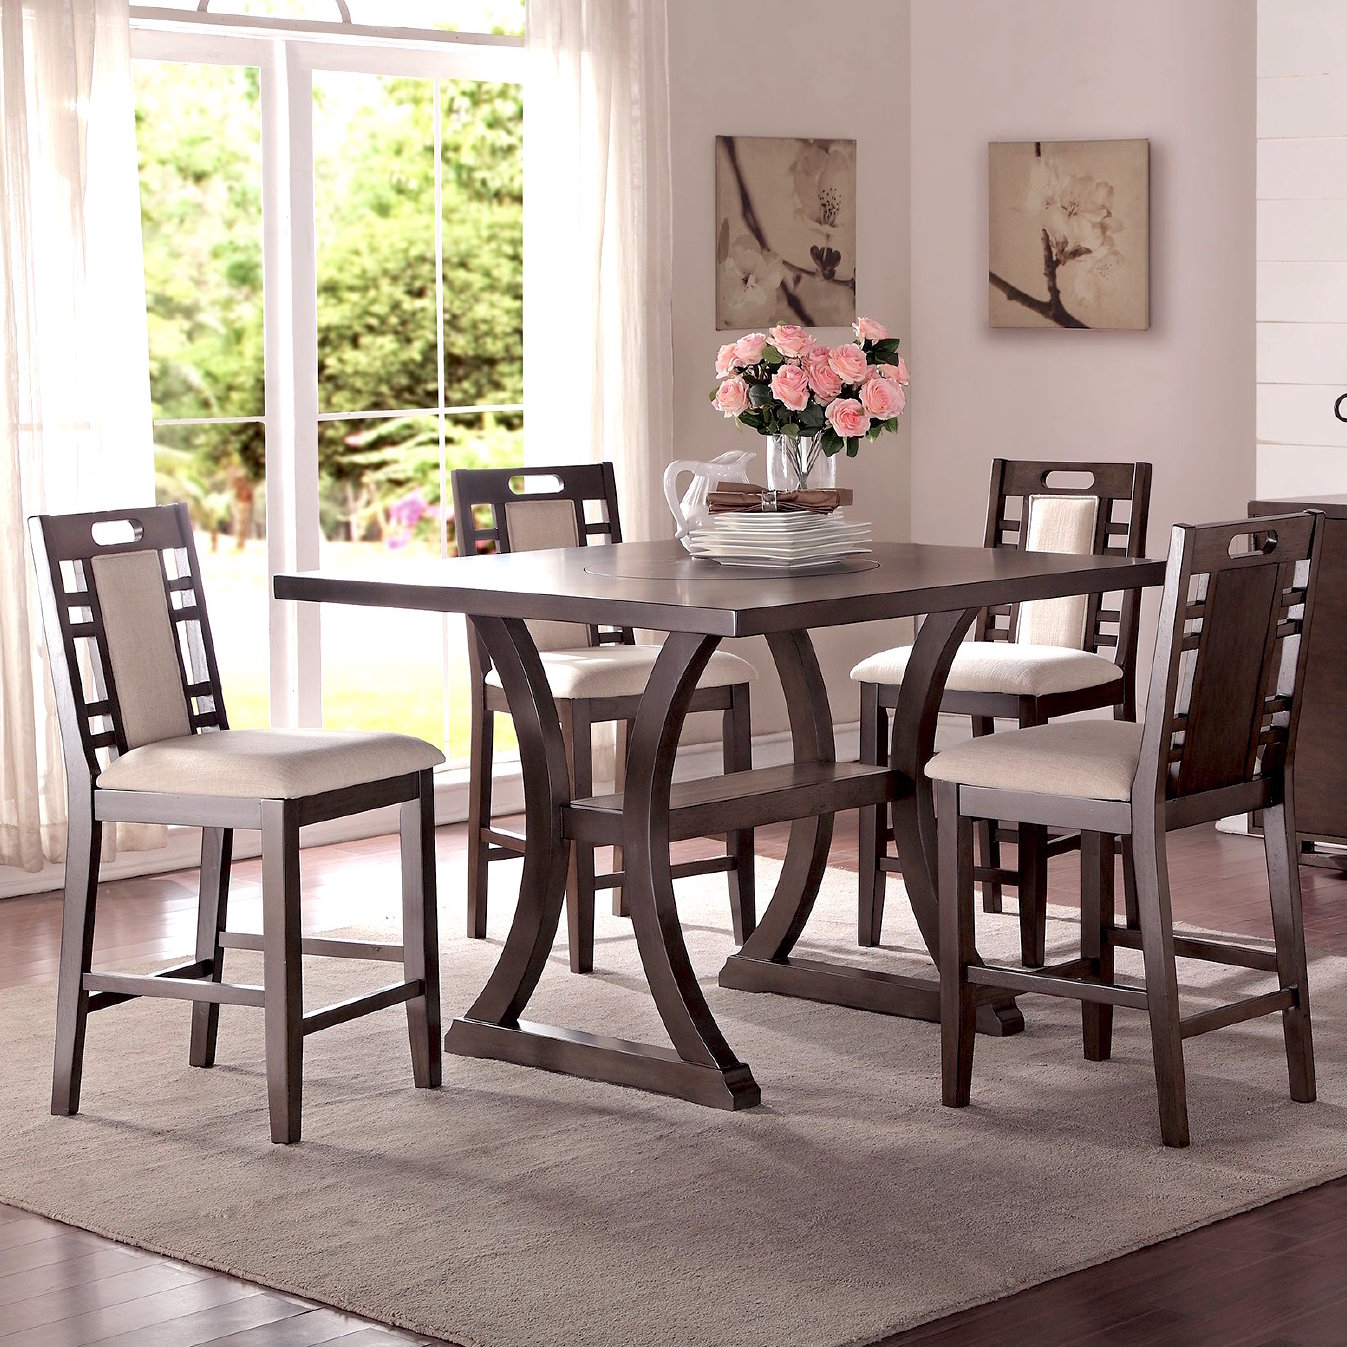 Joss & Main Pertaining To Goodman 5 Piece Solid Wood Dining Sets (Set Of 5) (#10 of 20)